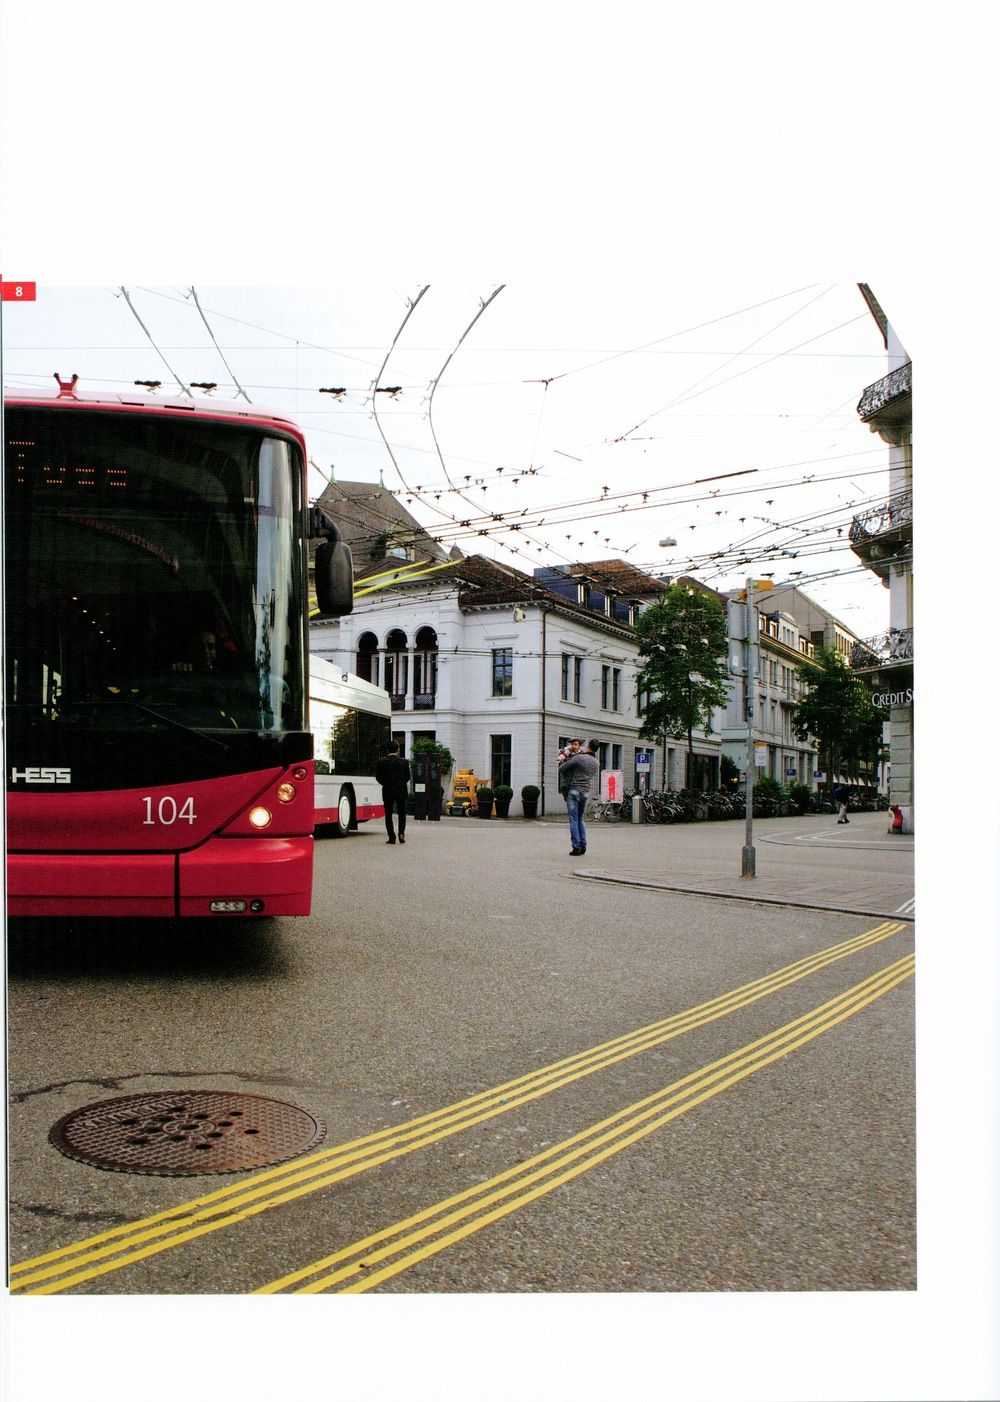 stadtbus-winterthur-annual-report-hero-image-photography-video-production-by-brilliant-lens.jpg